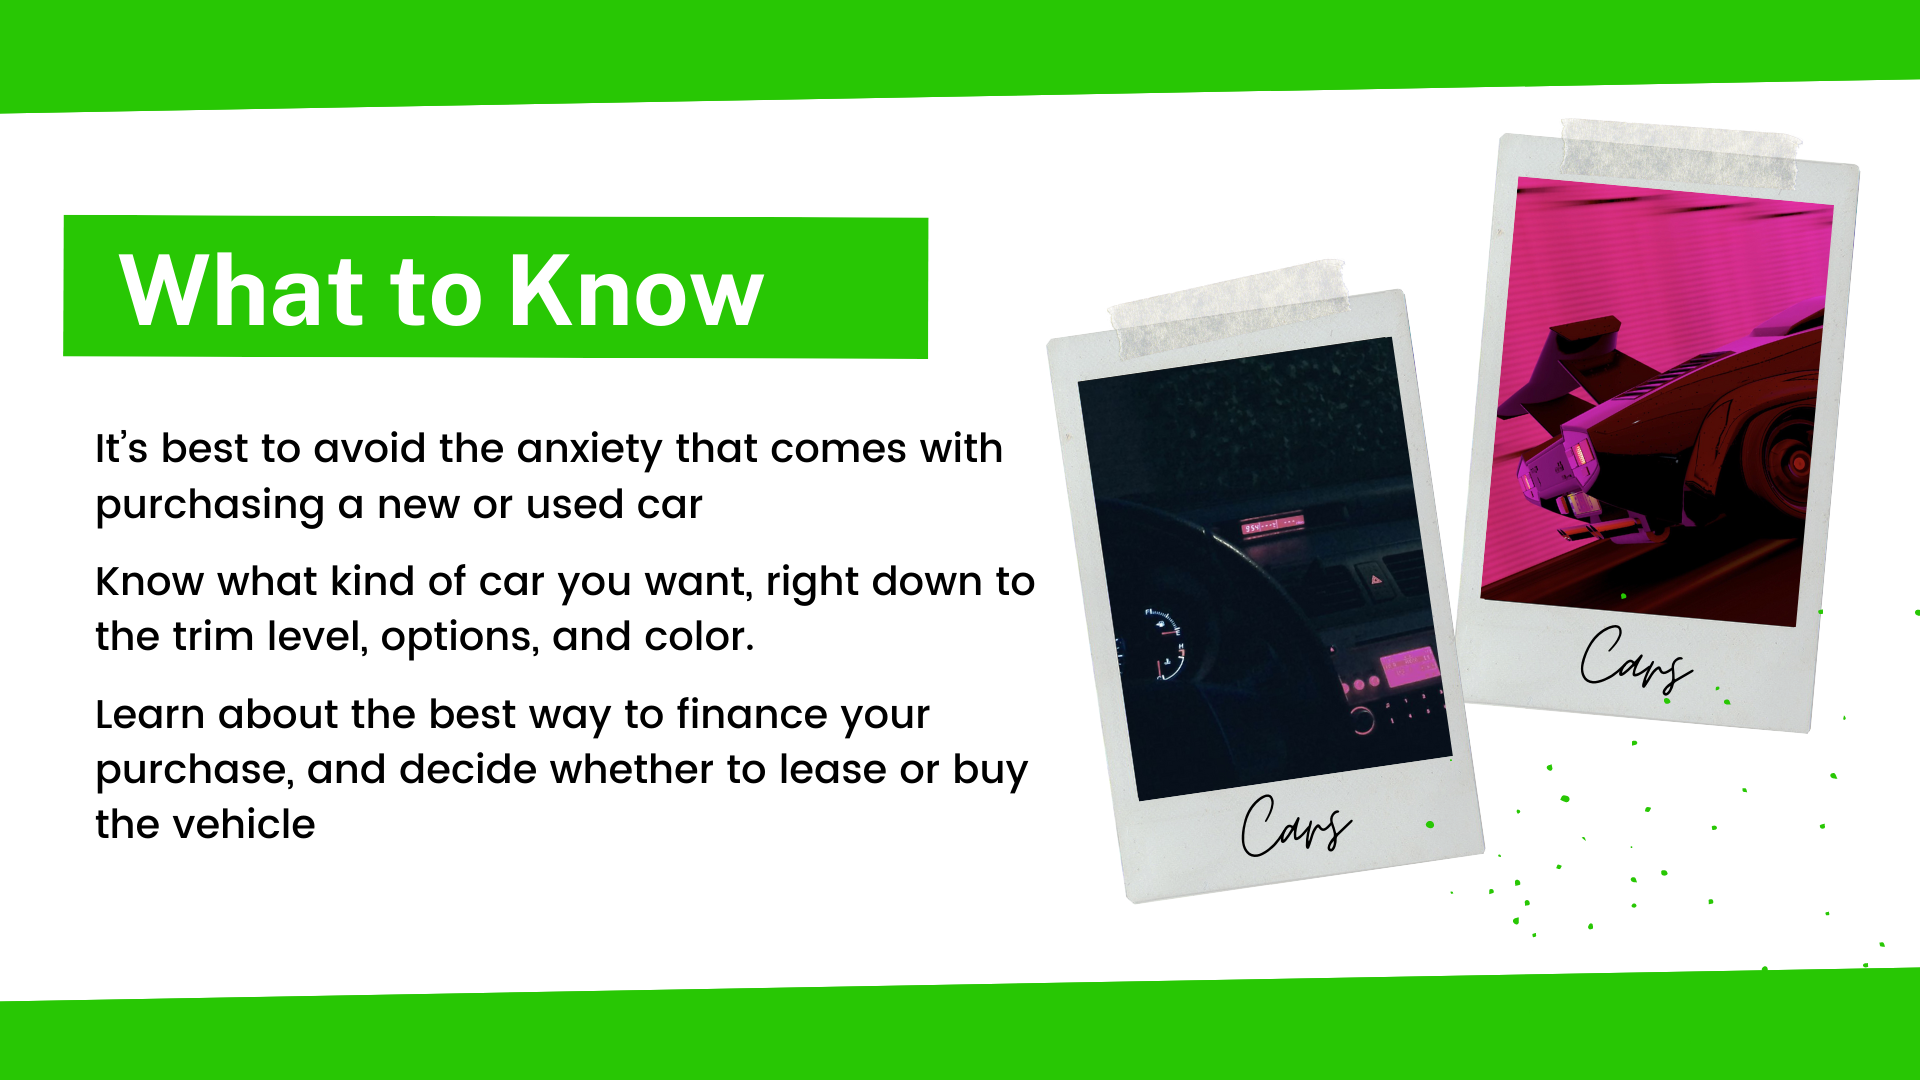 It's best to avoid the anxiety that comes with purchasing a new or used car. Know what kind of car you want, right down to the trim level, options, and color. Learn about the best way to finance your purchase, and decide whether to lease or buy the vehicle.